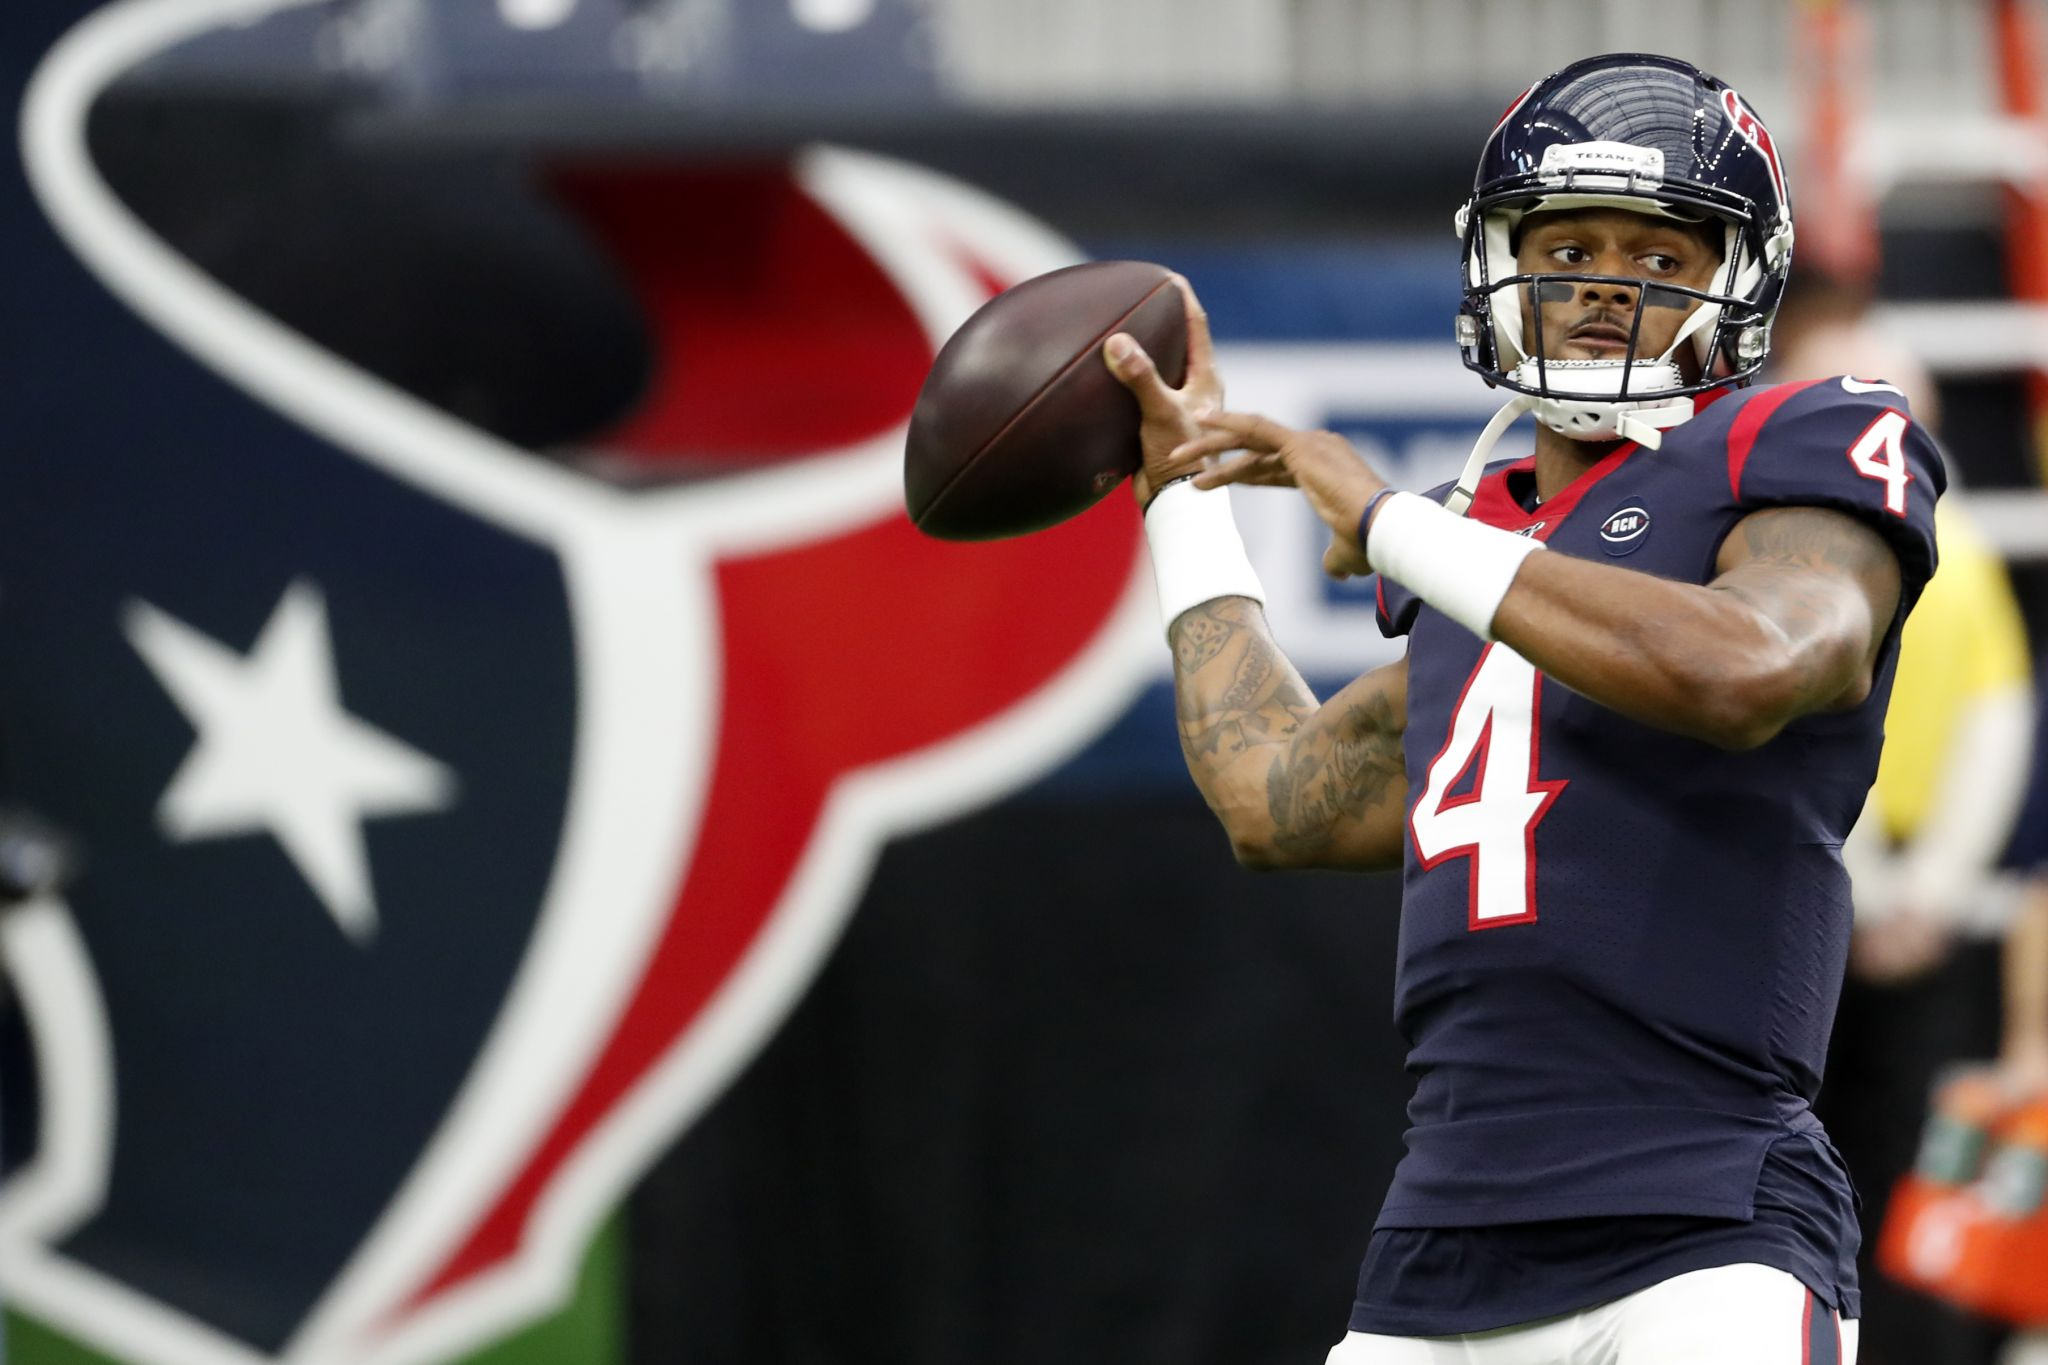 Time for Deshaun Watson to rise to top of AFC - HoustonChronicle.com